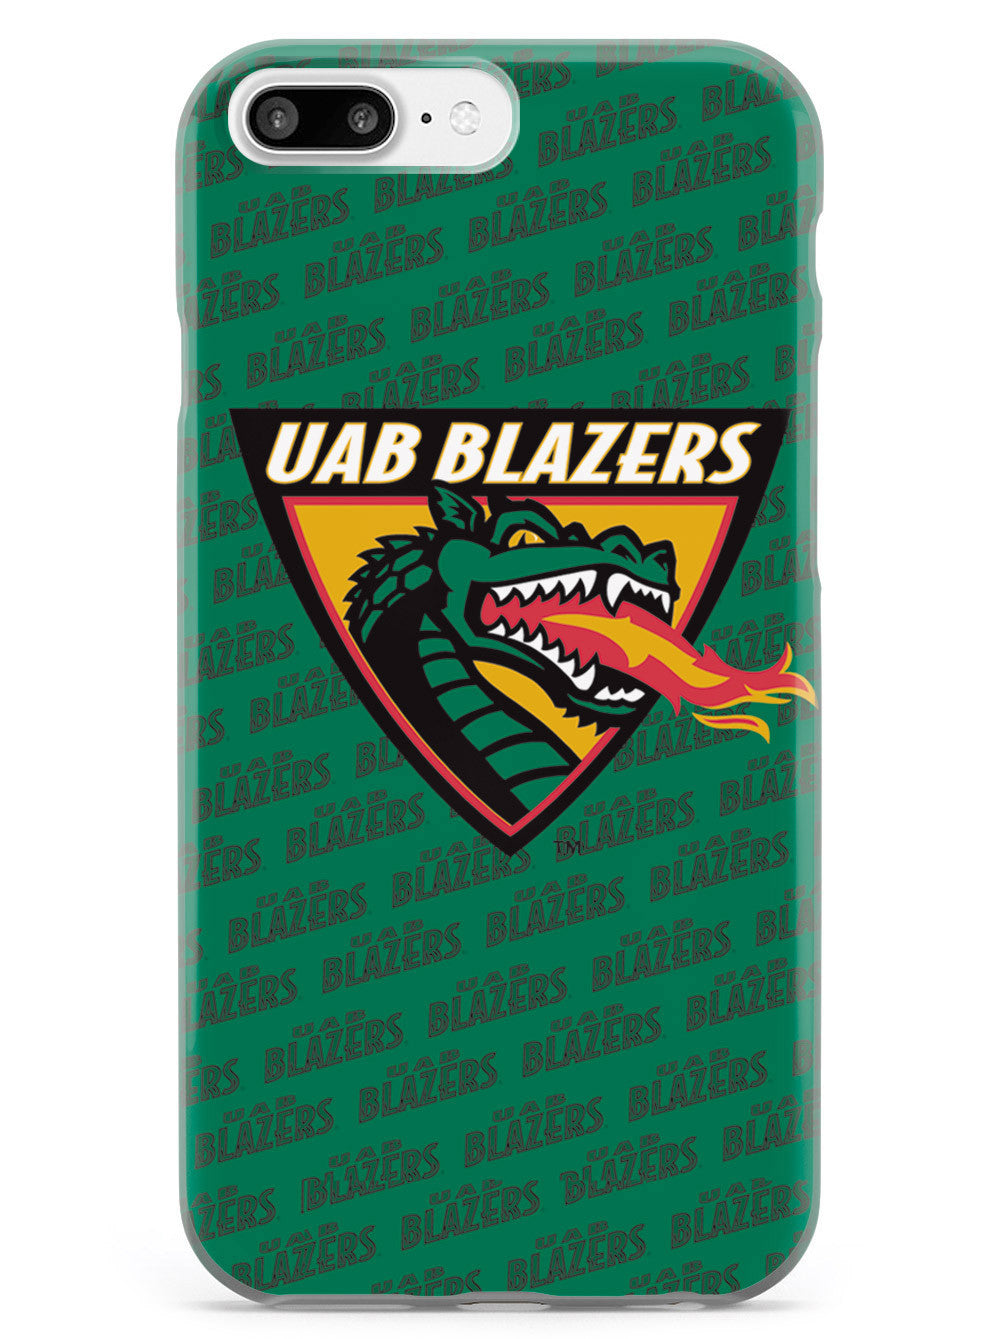 University of Alabama at Birmingham - UAB Blazers Case